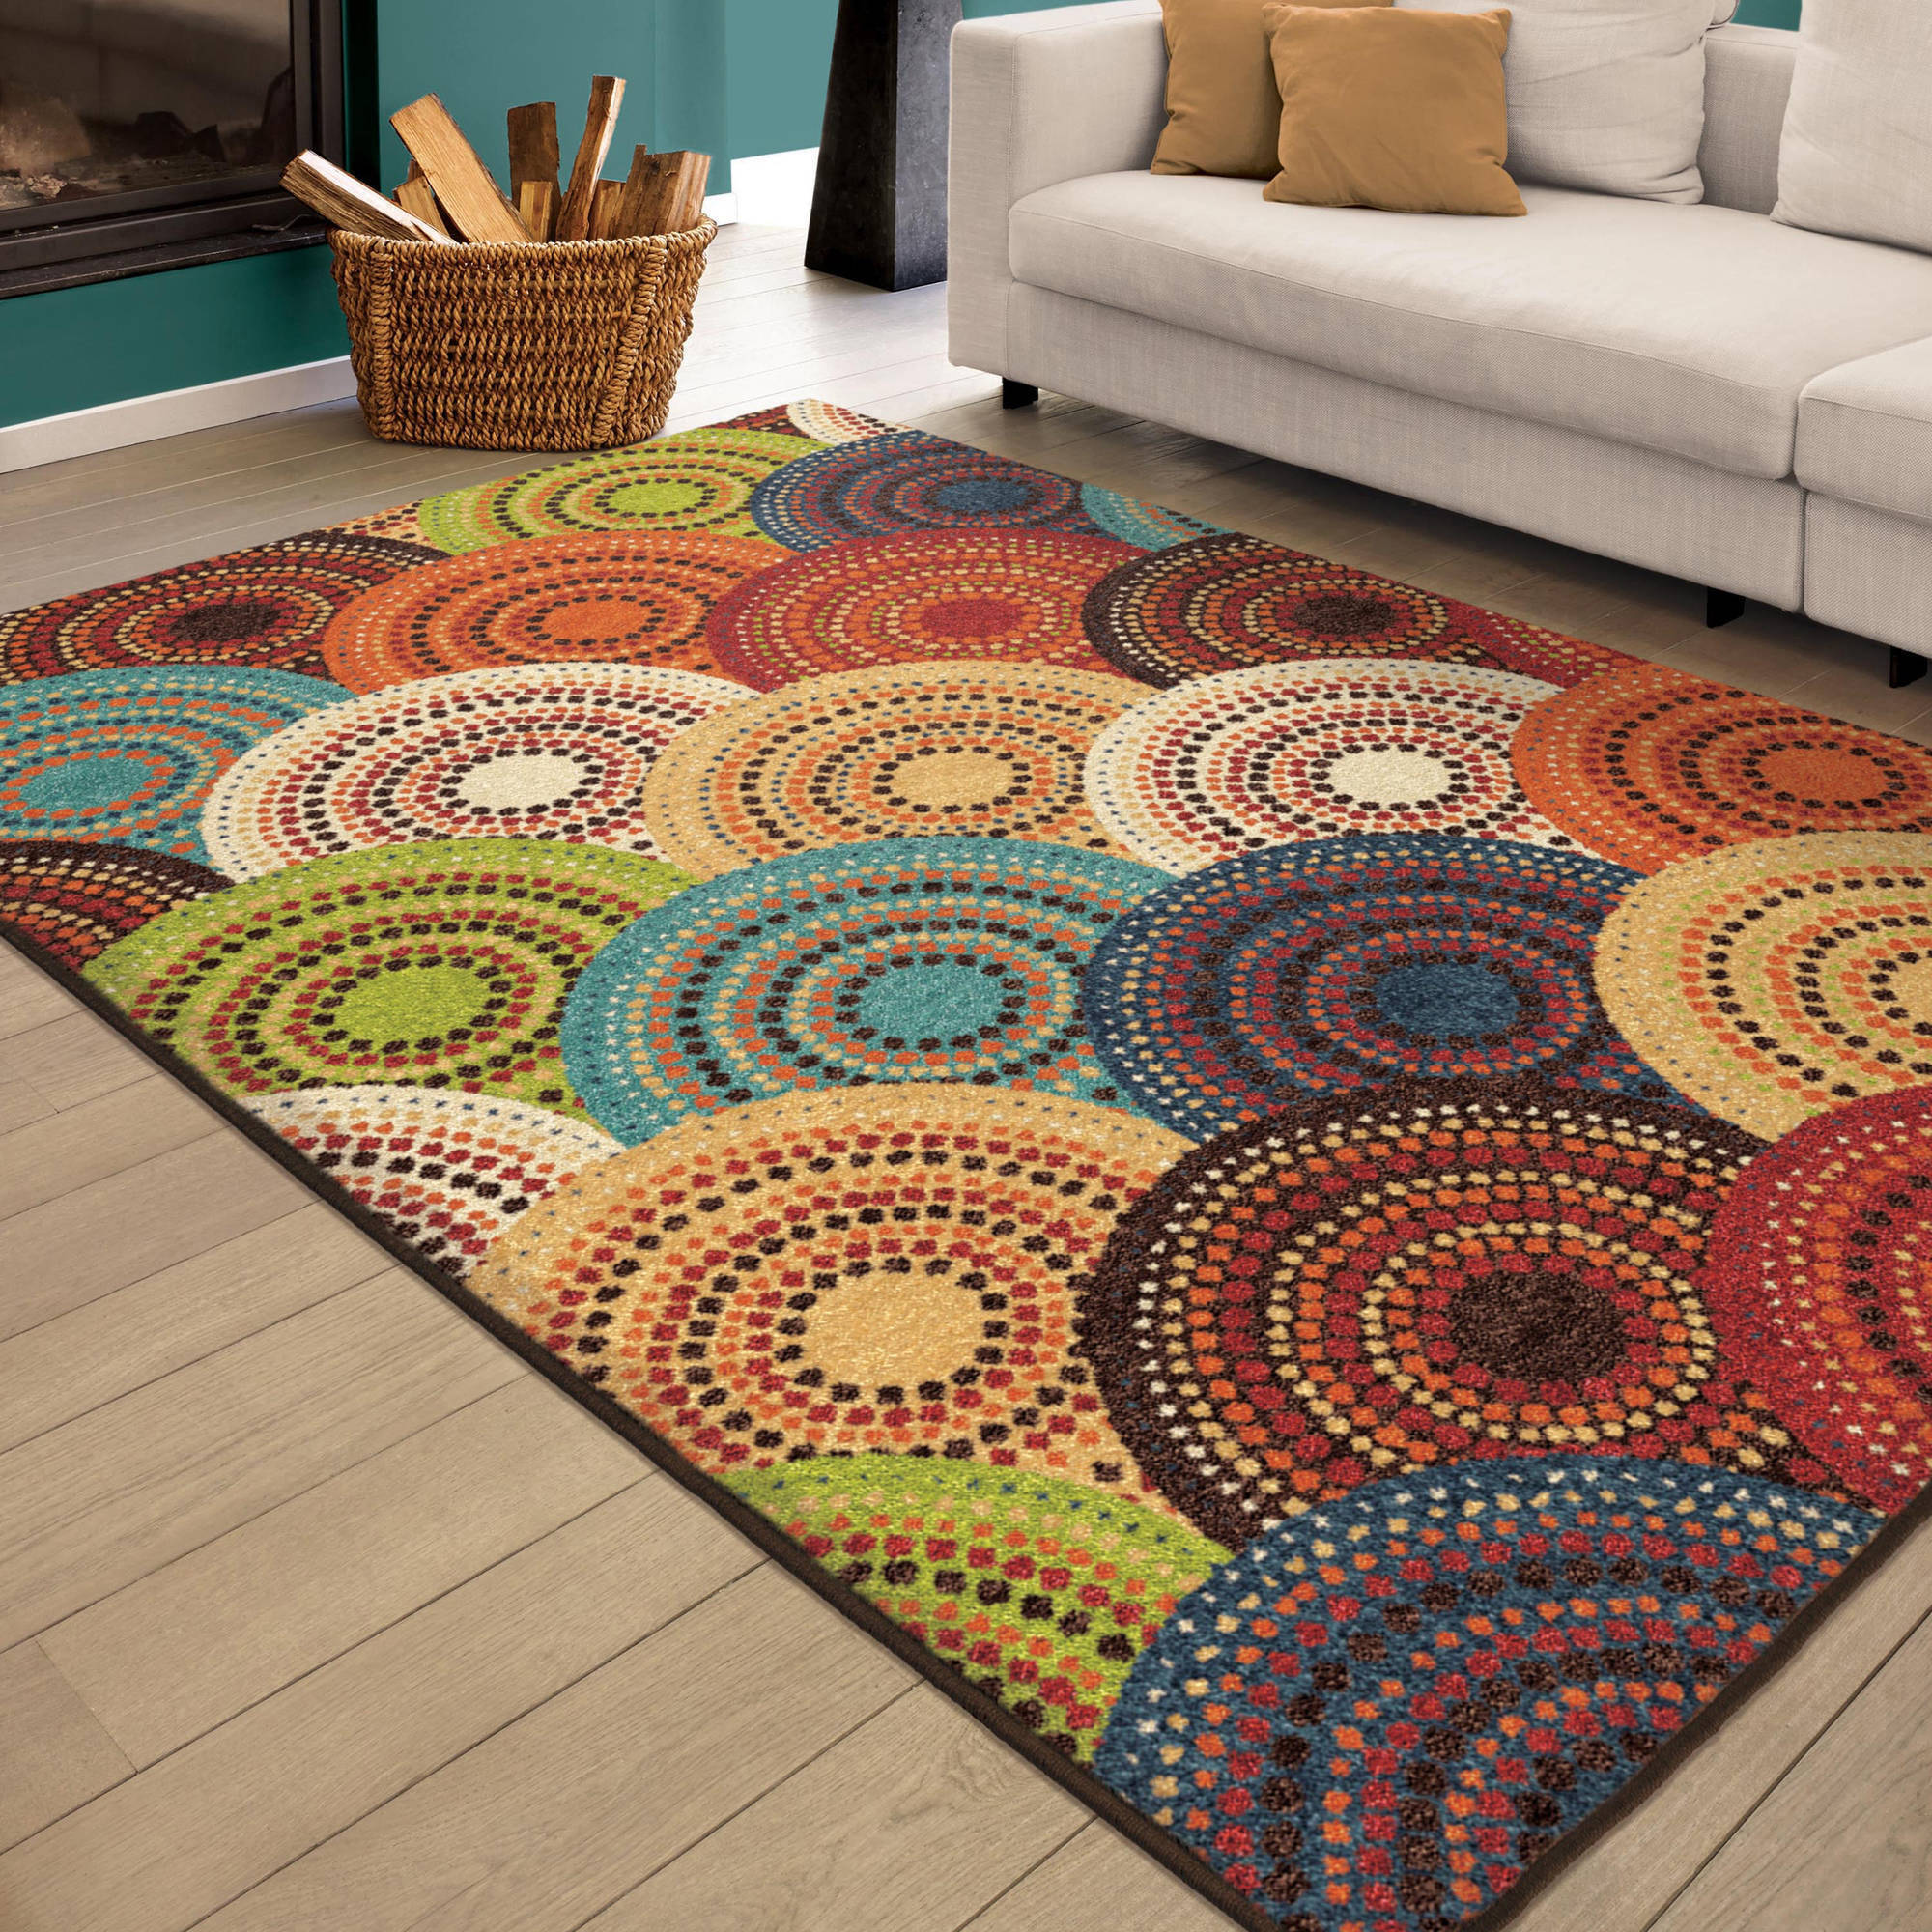 rug with circles